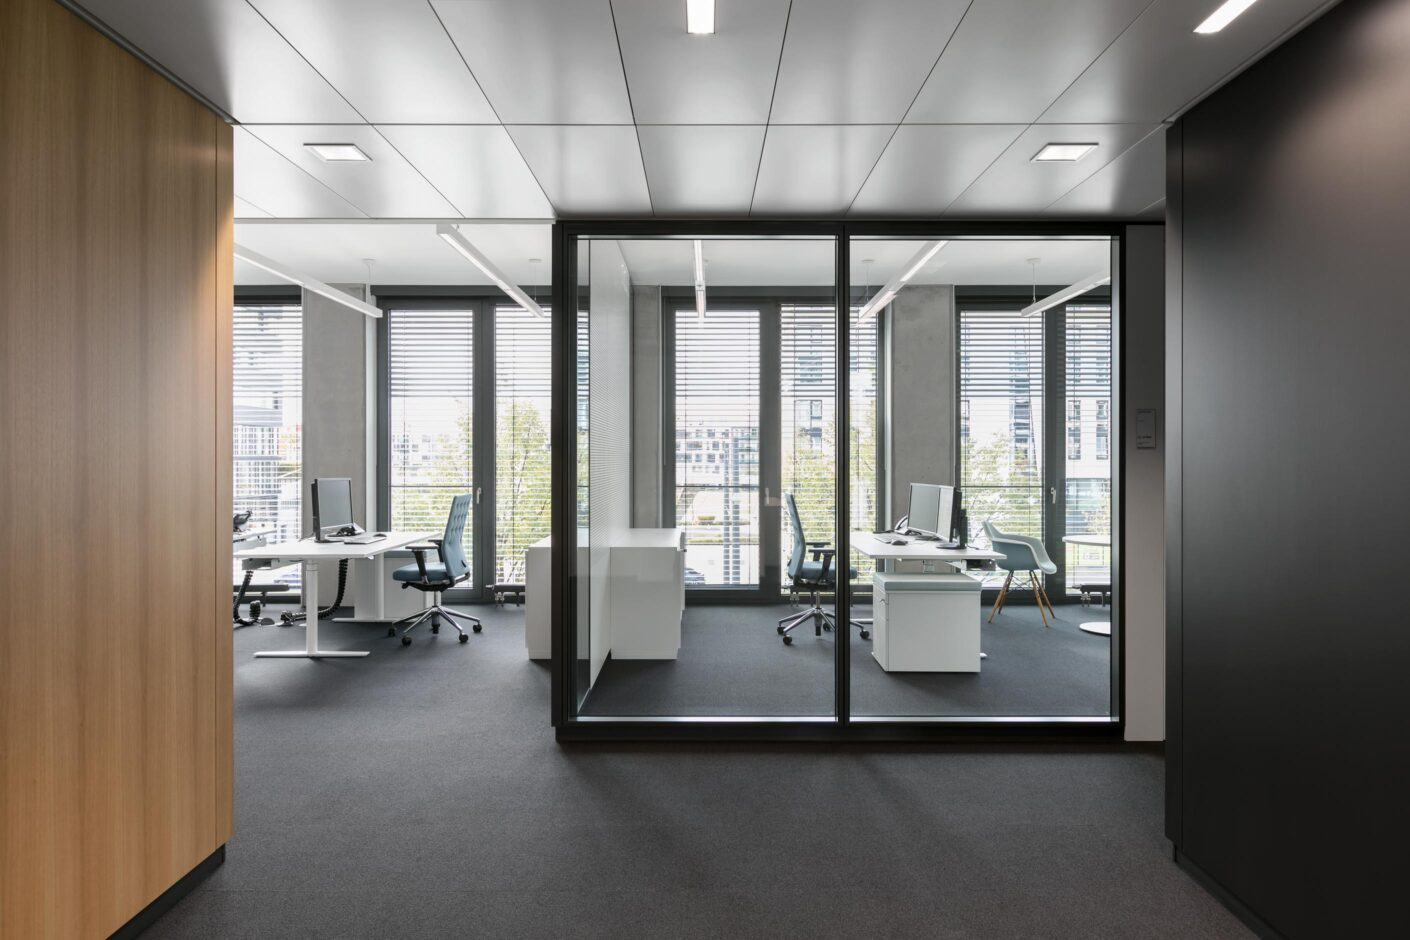 feco-feederle│partition walls│KVBW Karlsruhe